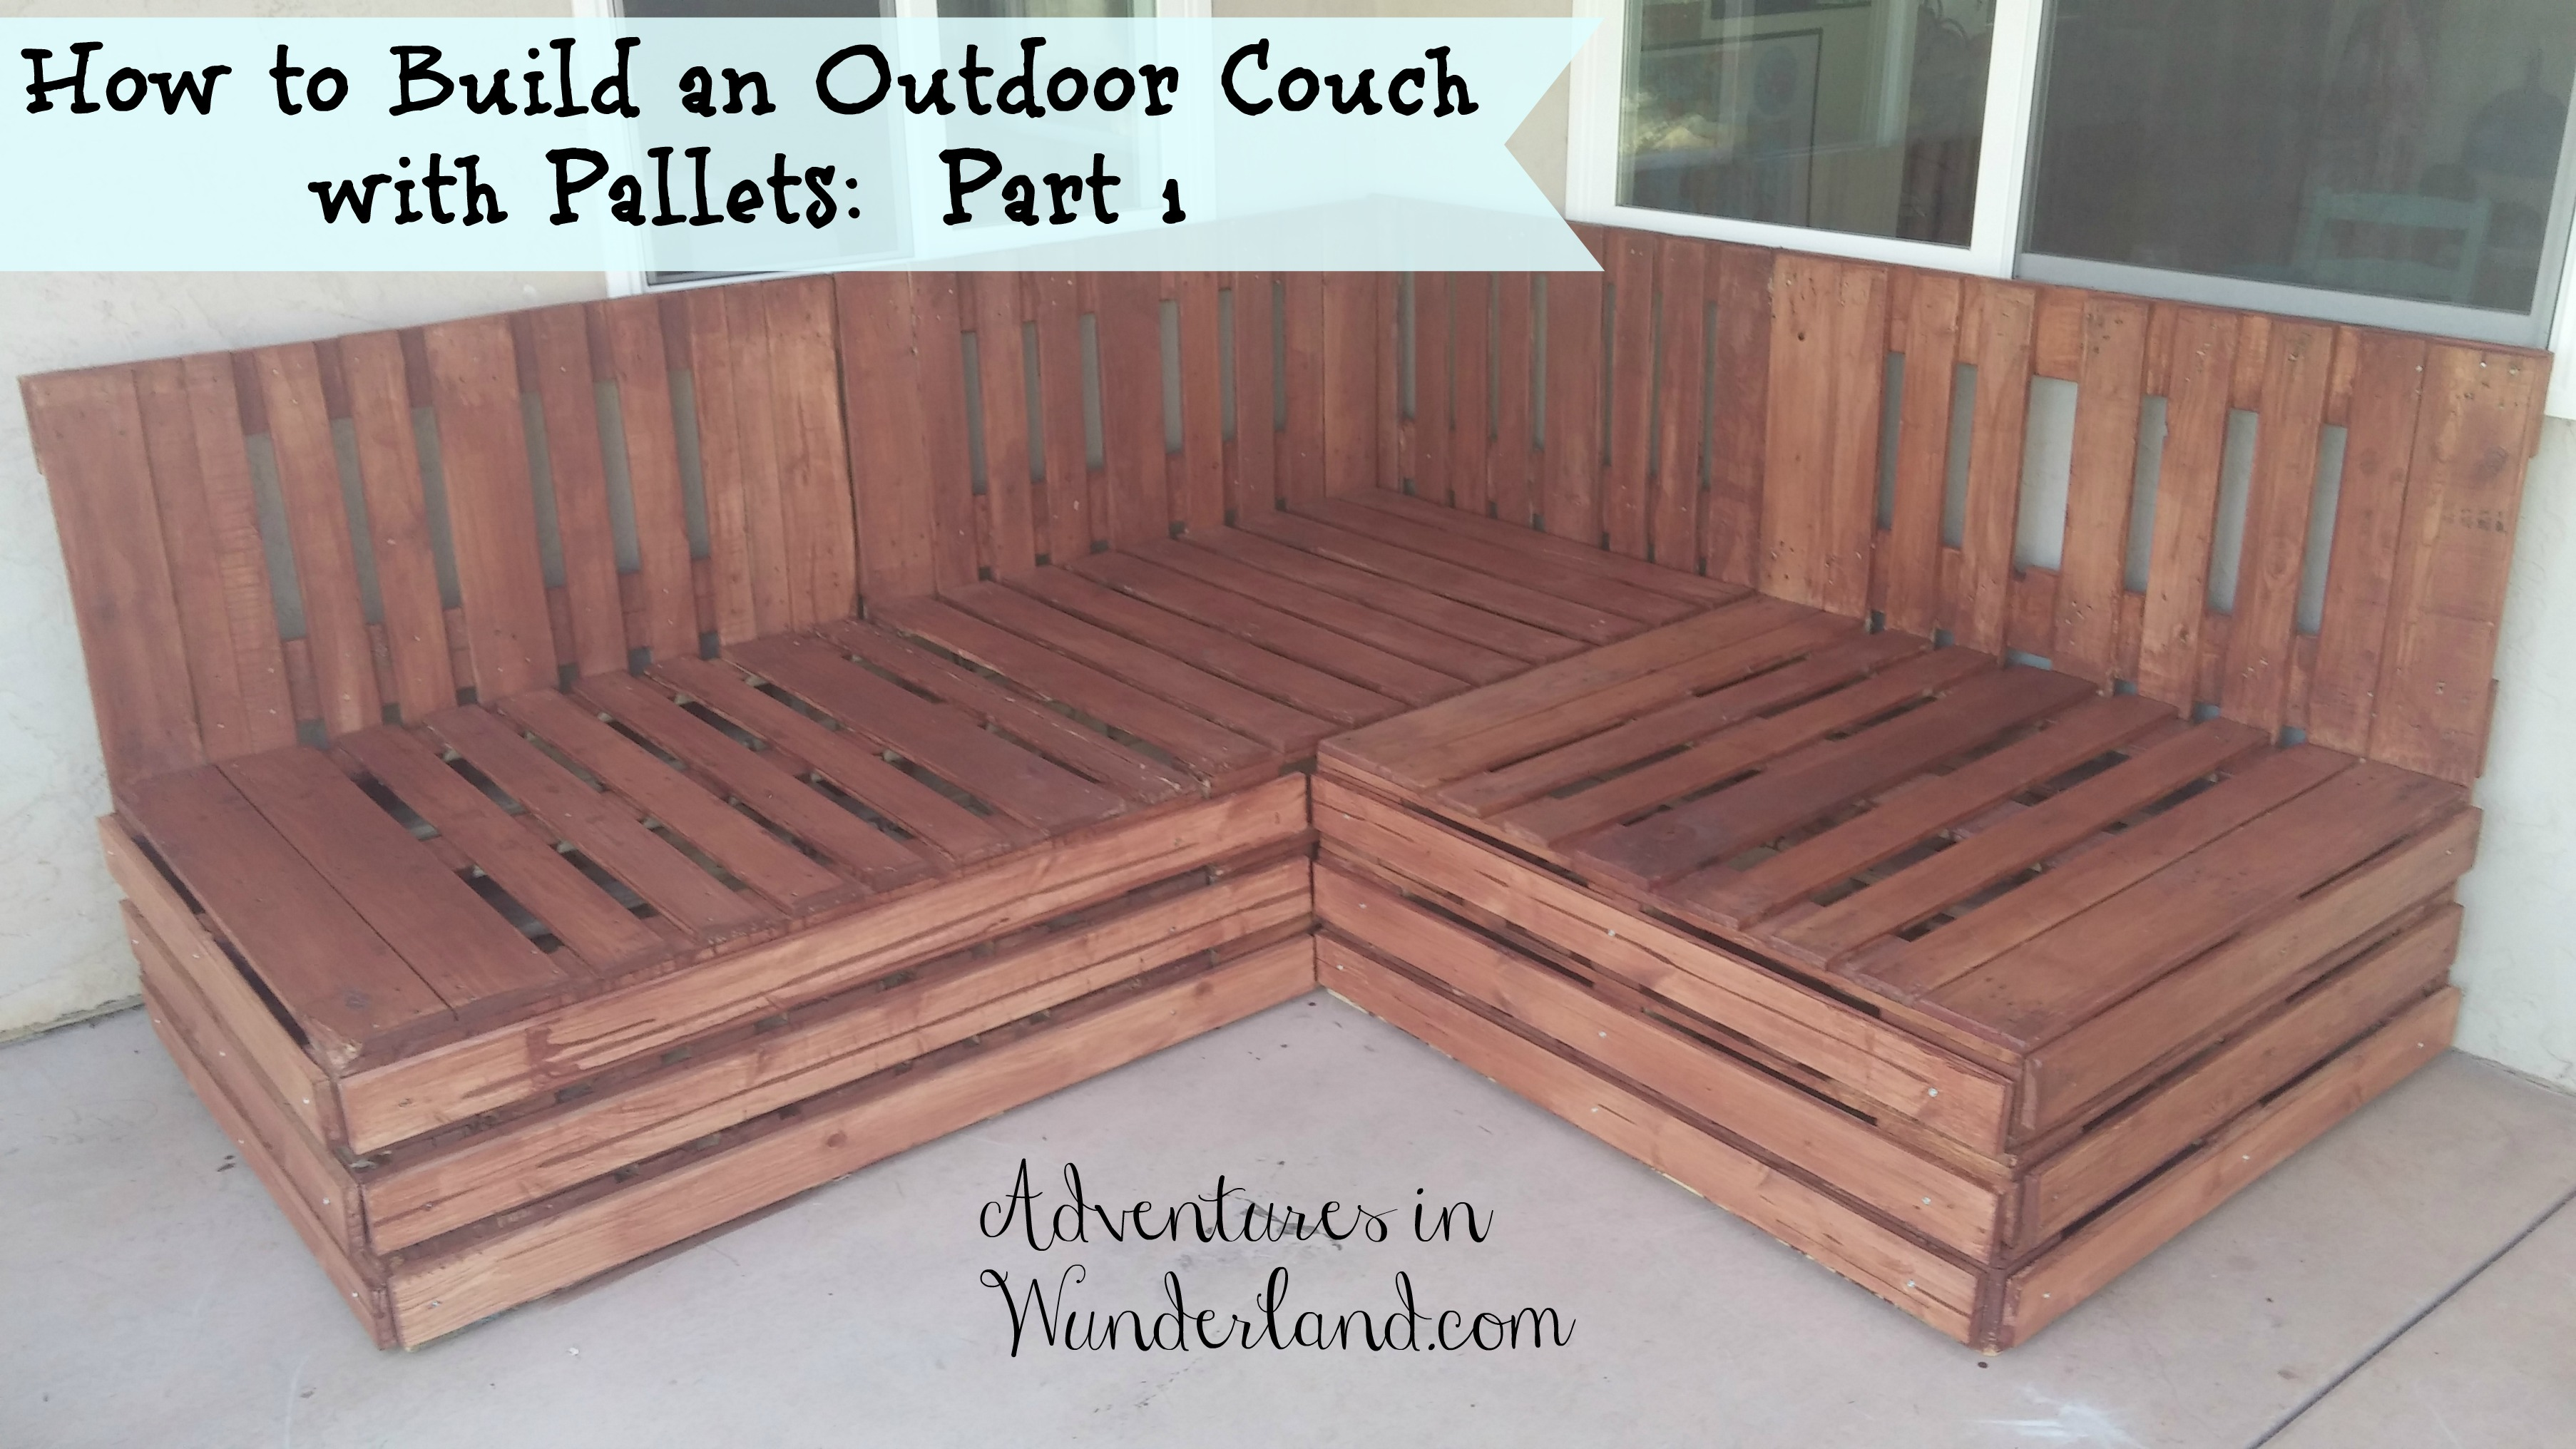 Sofa Palette How To Build An Outdoor Couch With Pallets Part 1